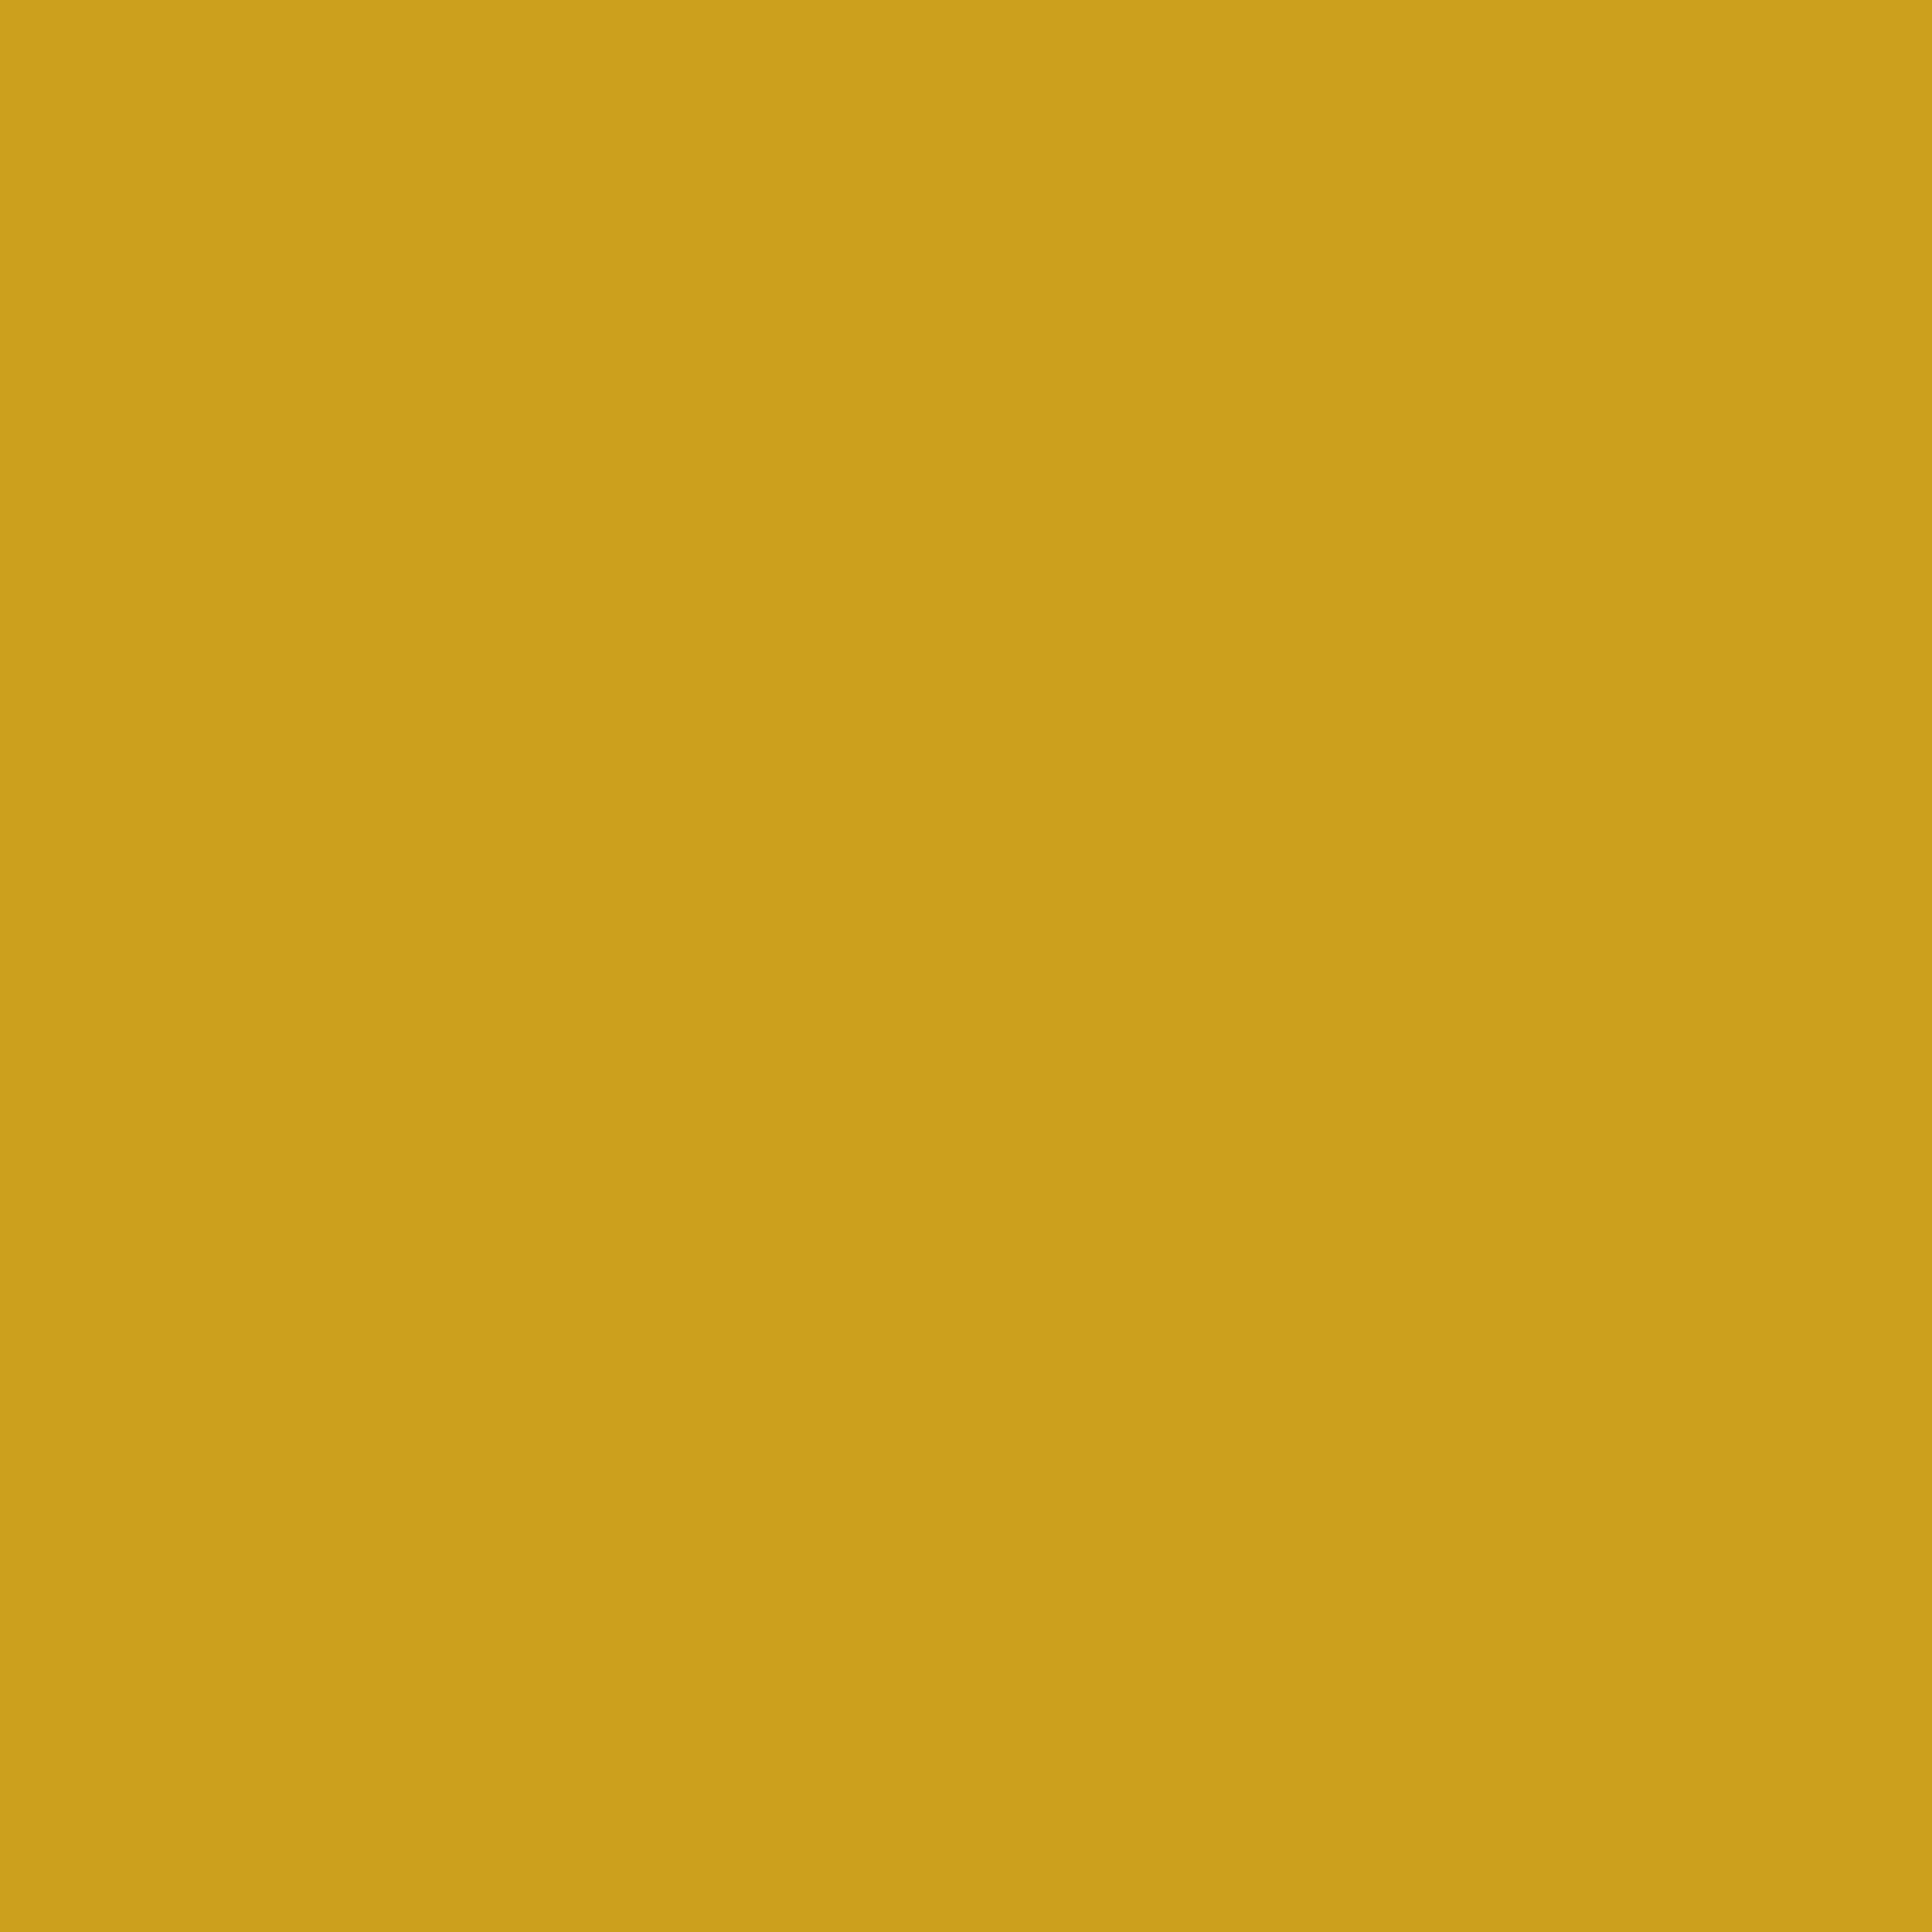 2048x2048 Lemon Curry Solid Color Background